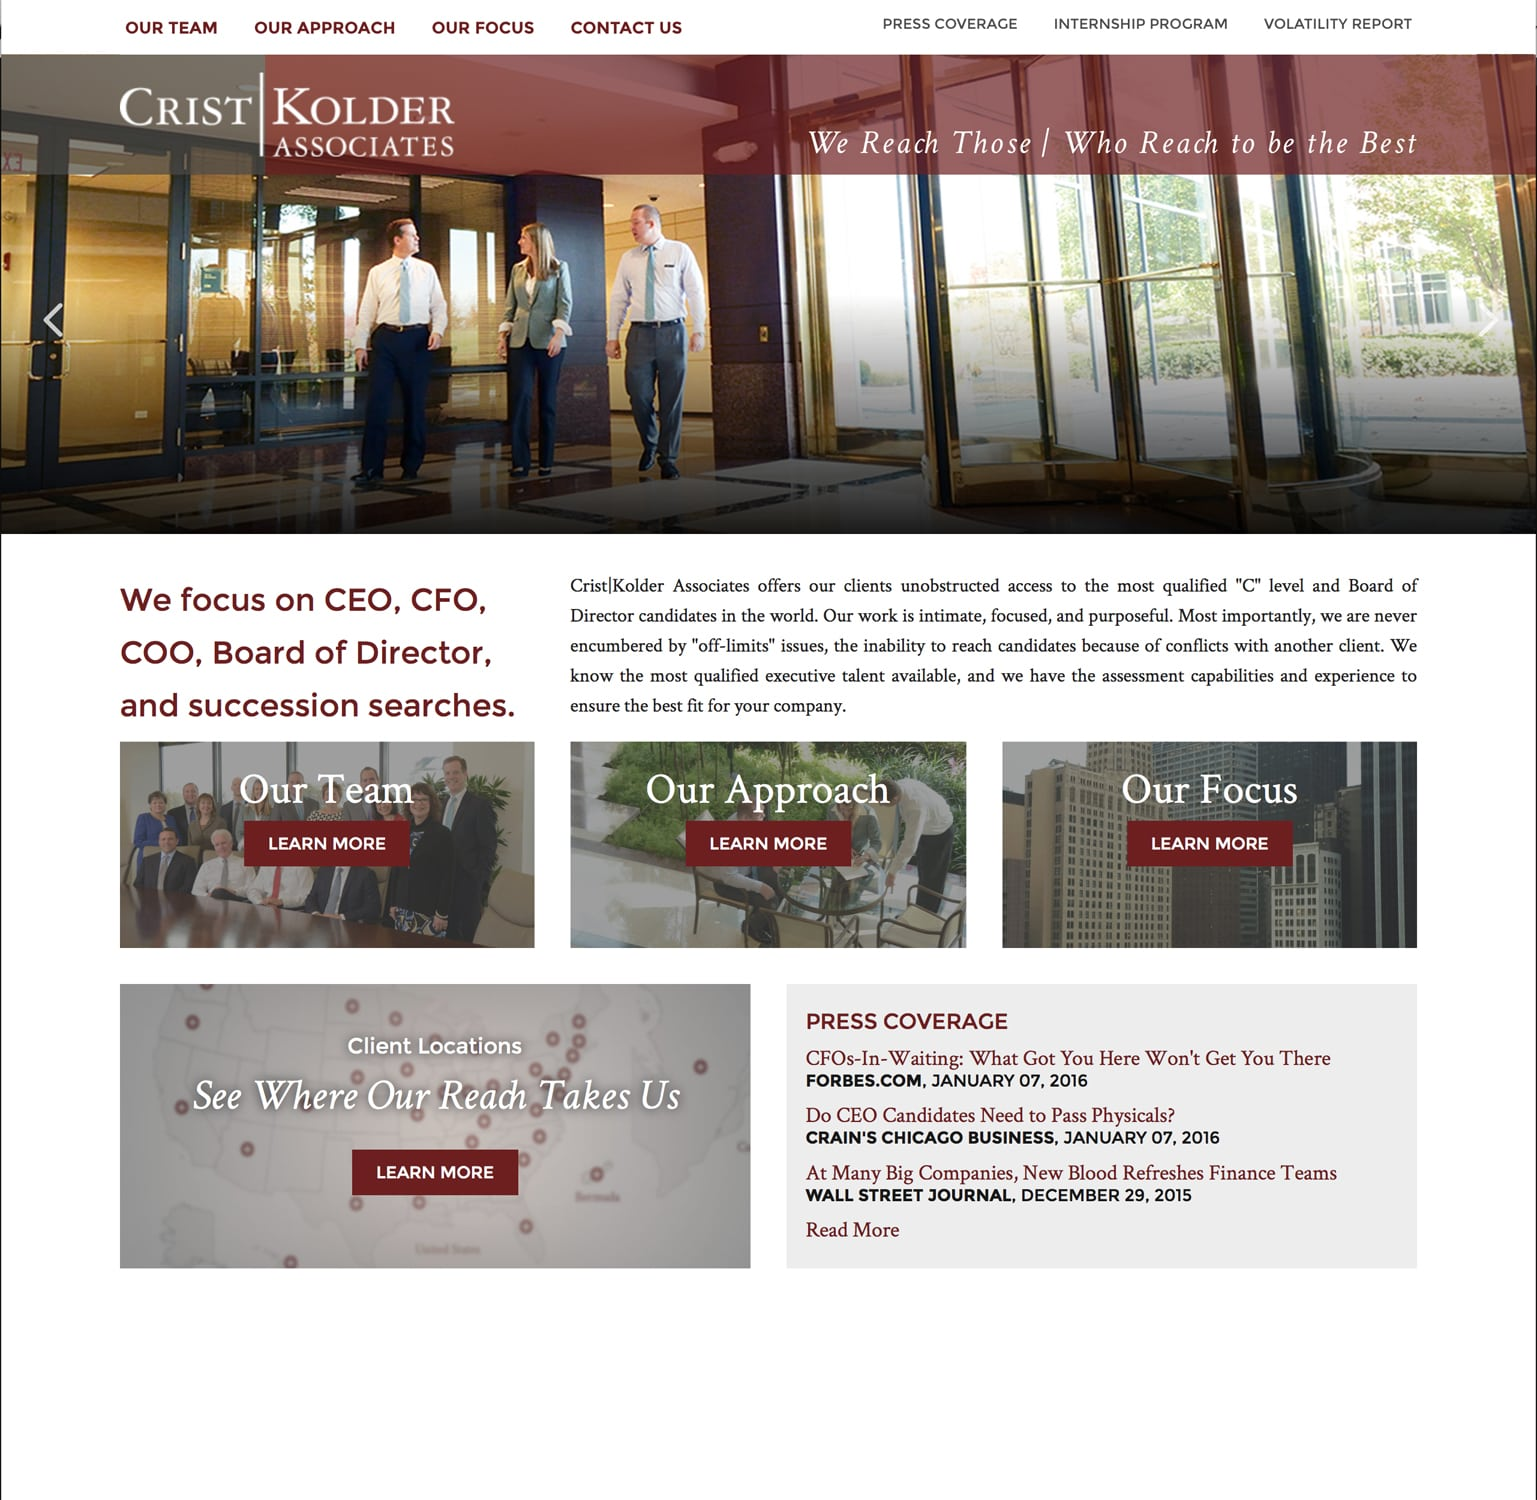 Web page for Crist Kolder Associates Focus page with photo of office workers walking in lobby of building with revolving doors to the Corporate Photography